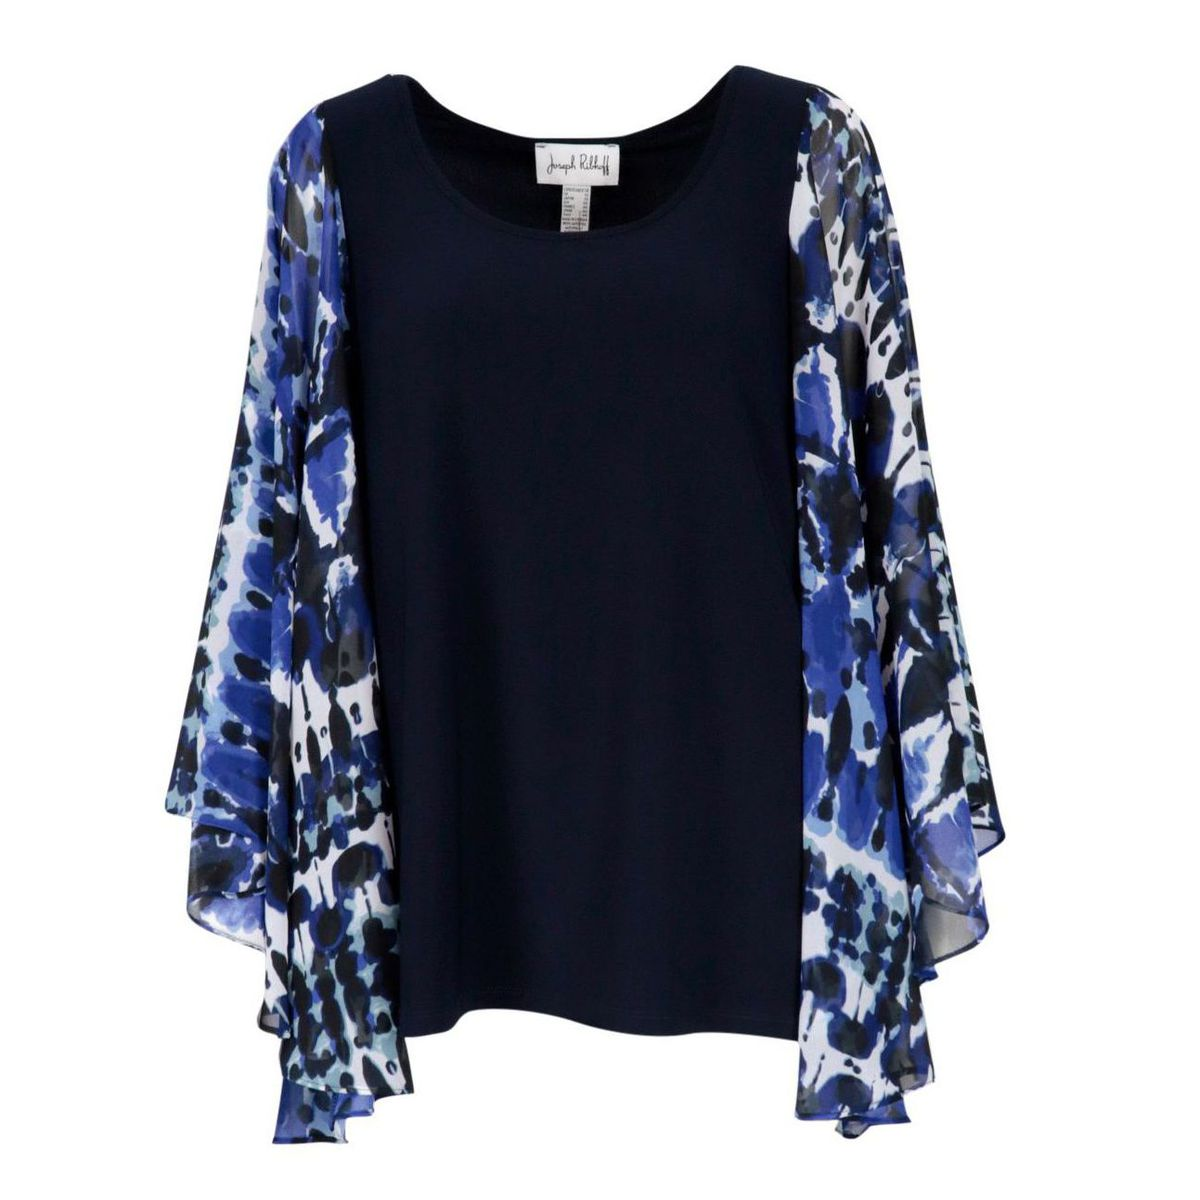 Polyester sweater with wide patterned sleeves Blue / cornflower blue Joseph Ribkoff